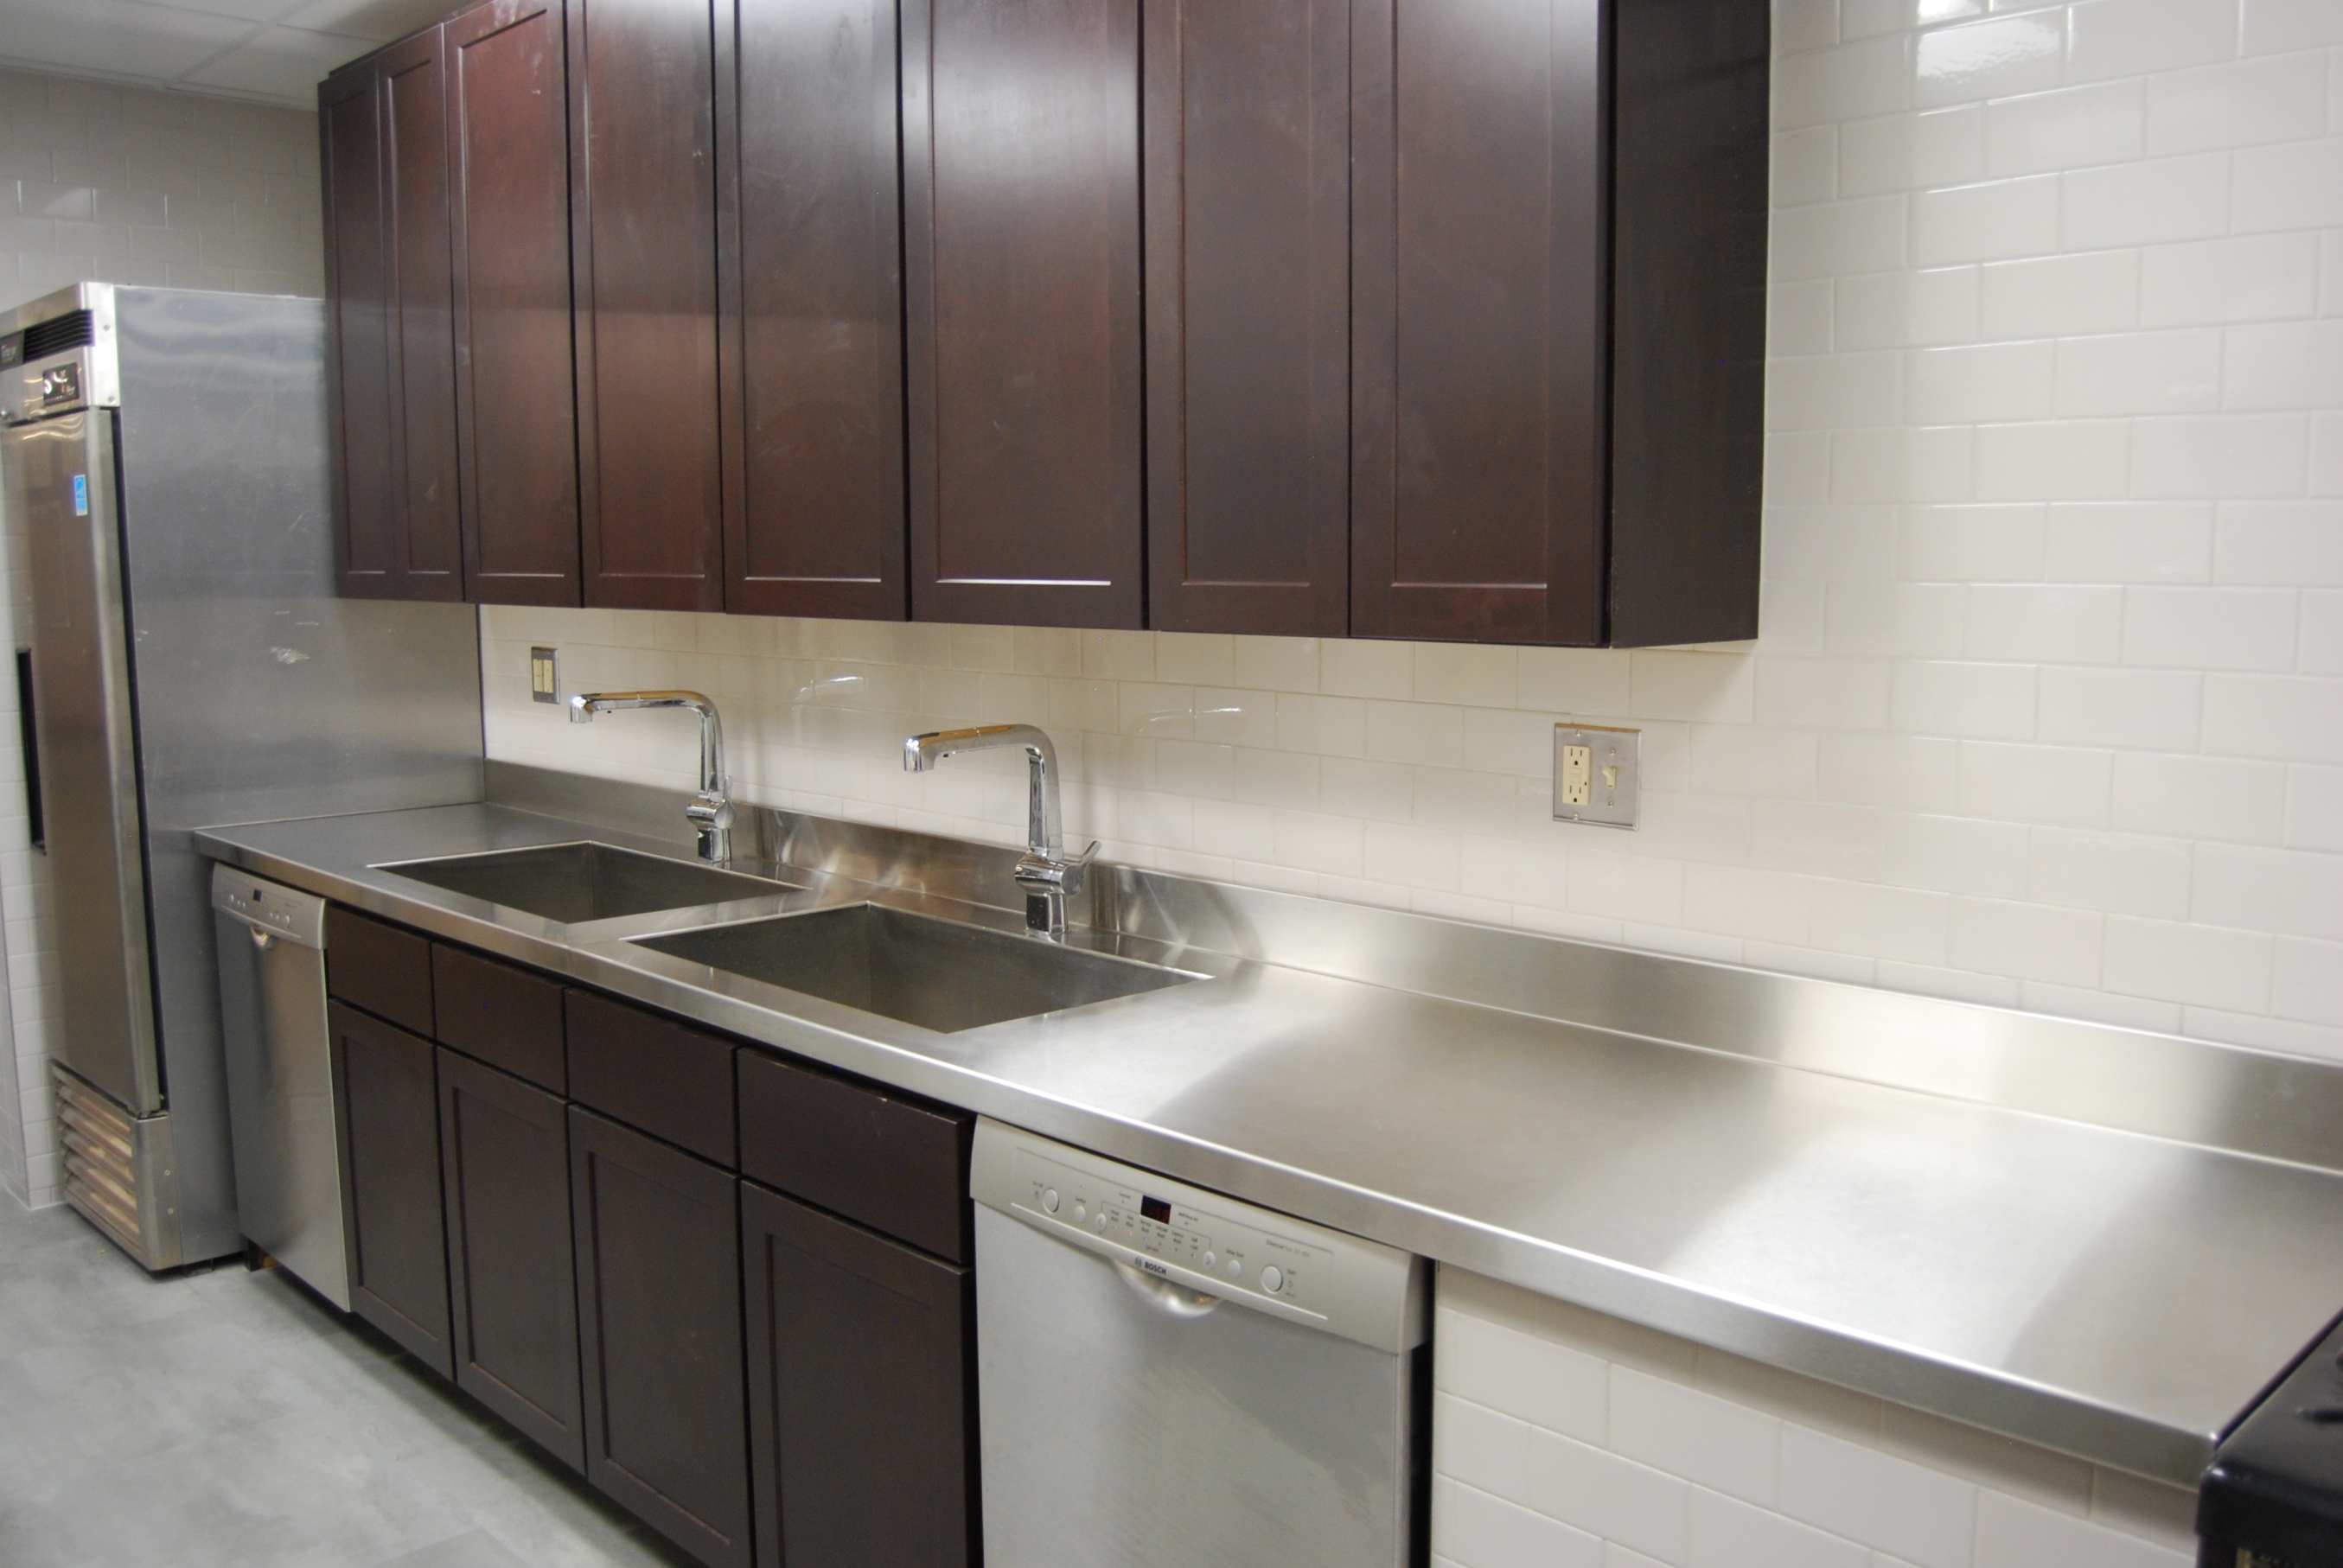 Kitchen Countertops Product : Custom metal home stainless steel countertops